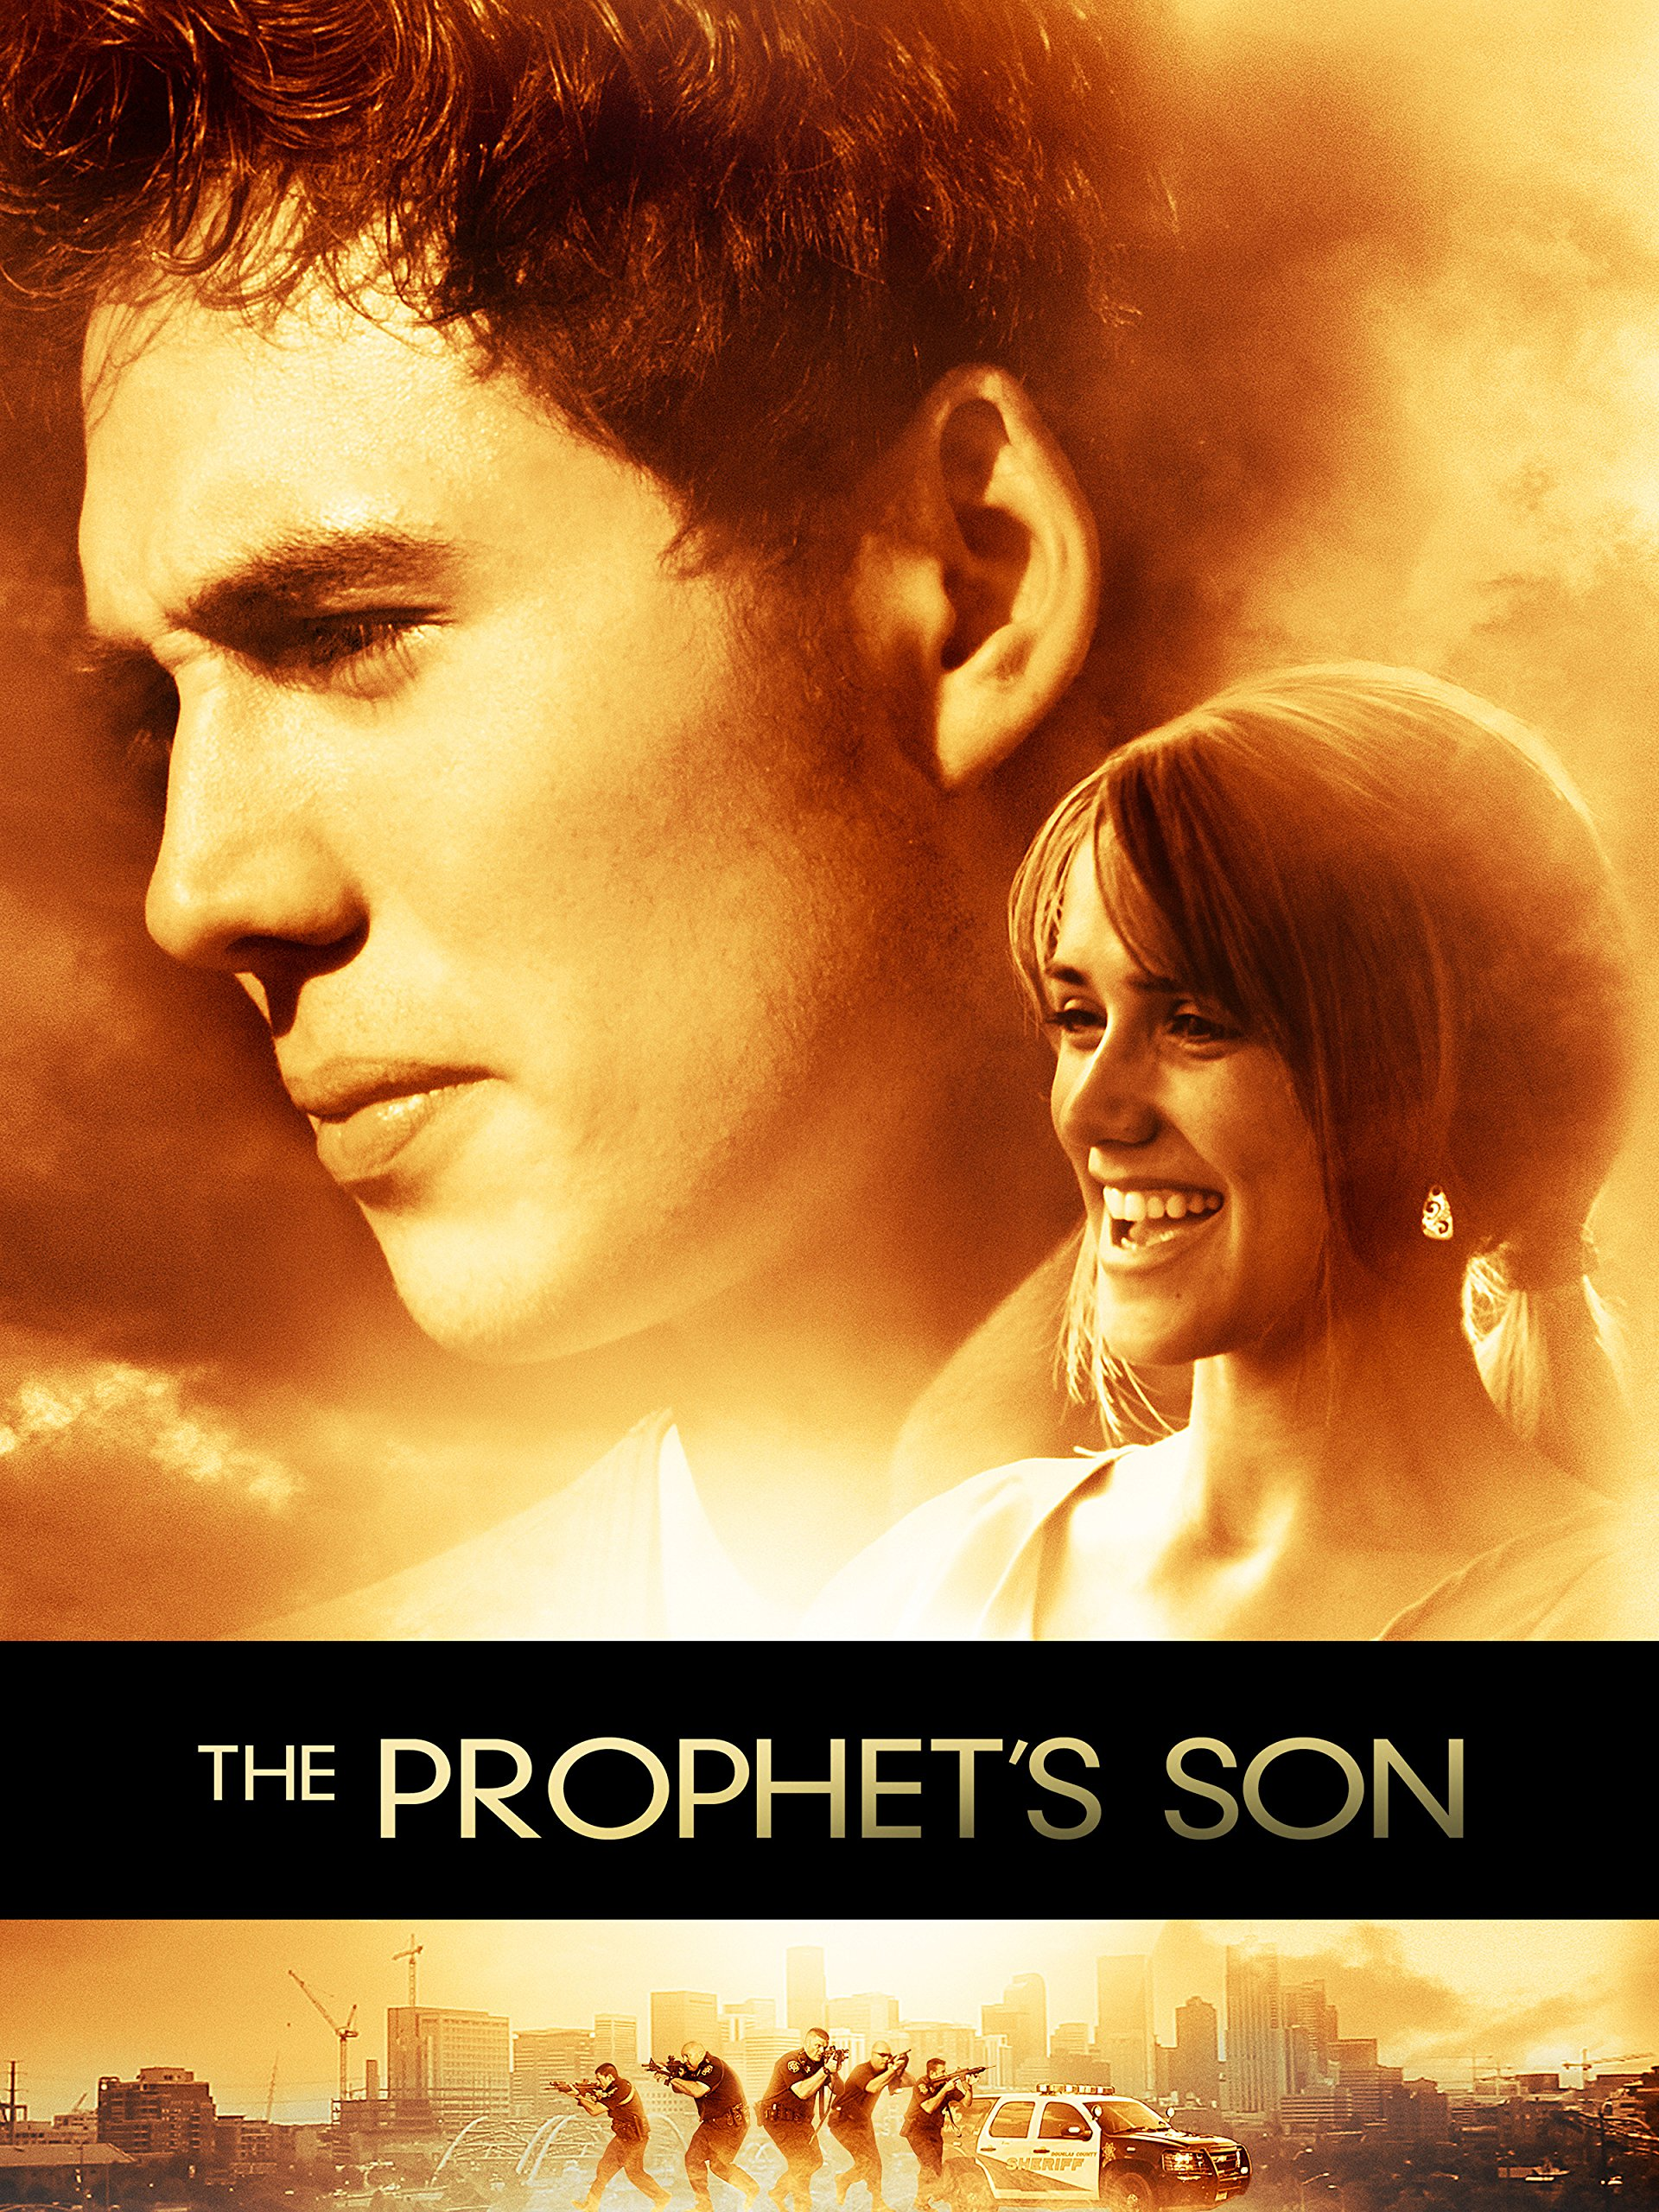 The Prophet's Son